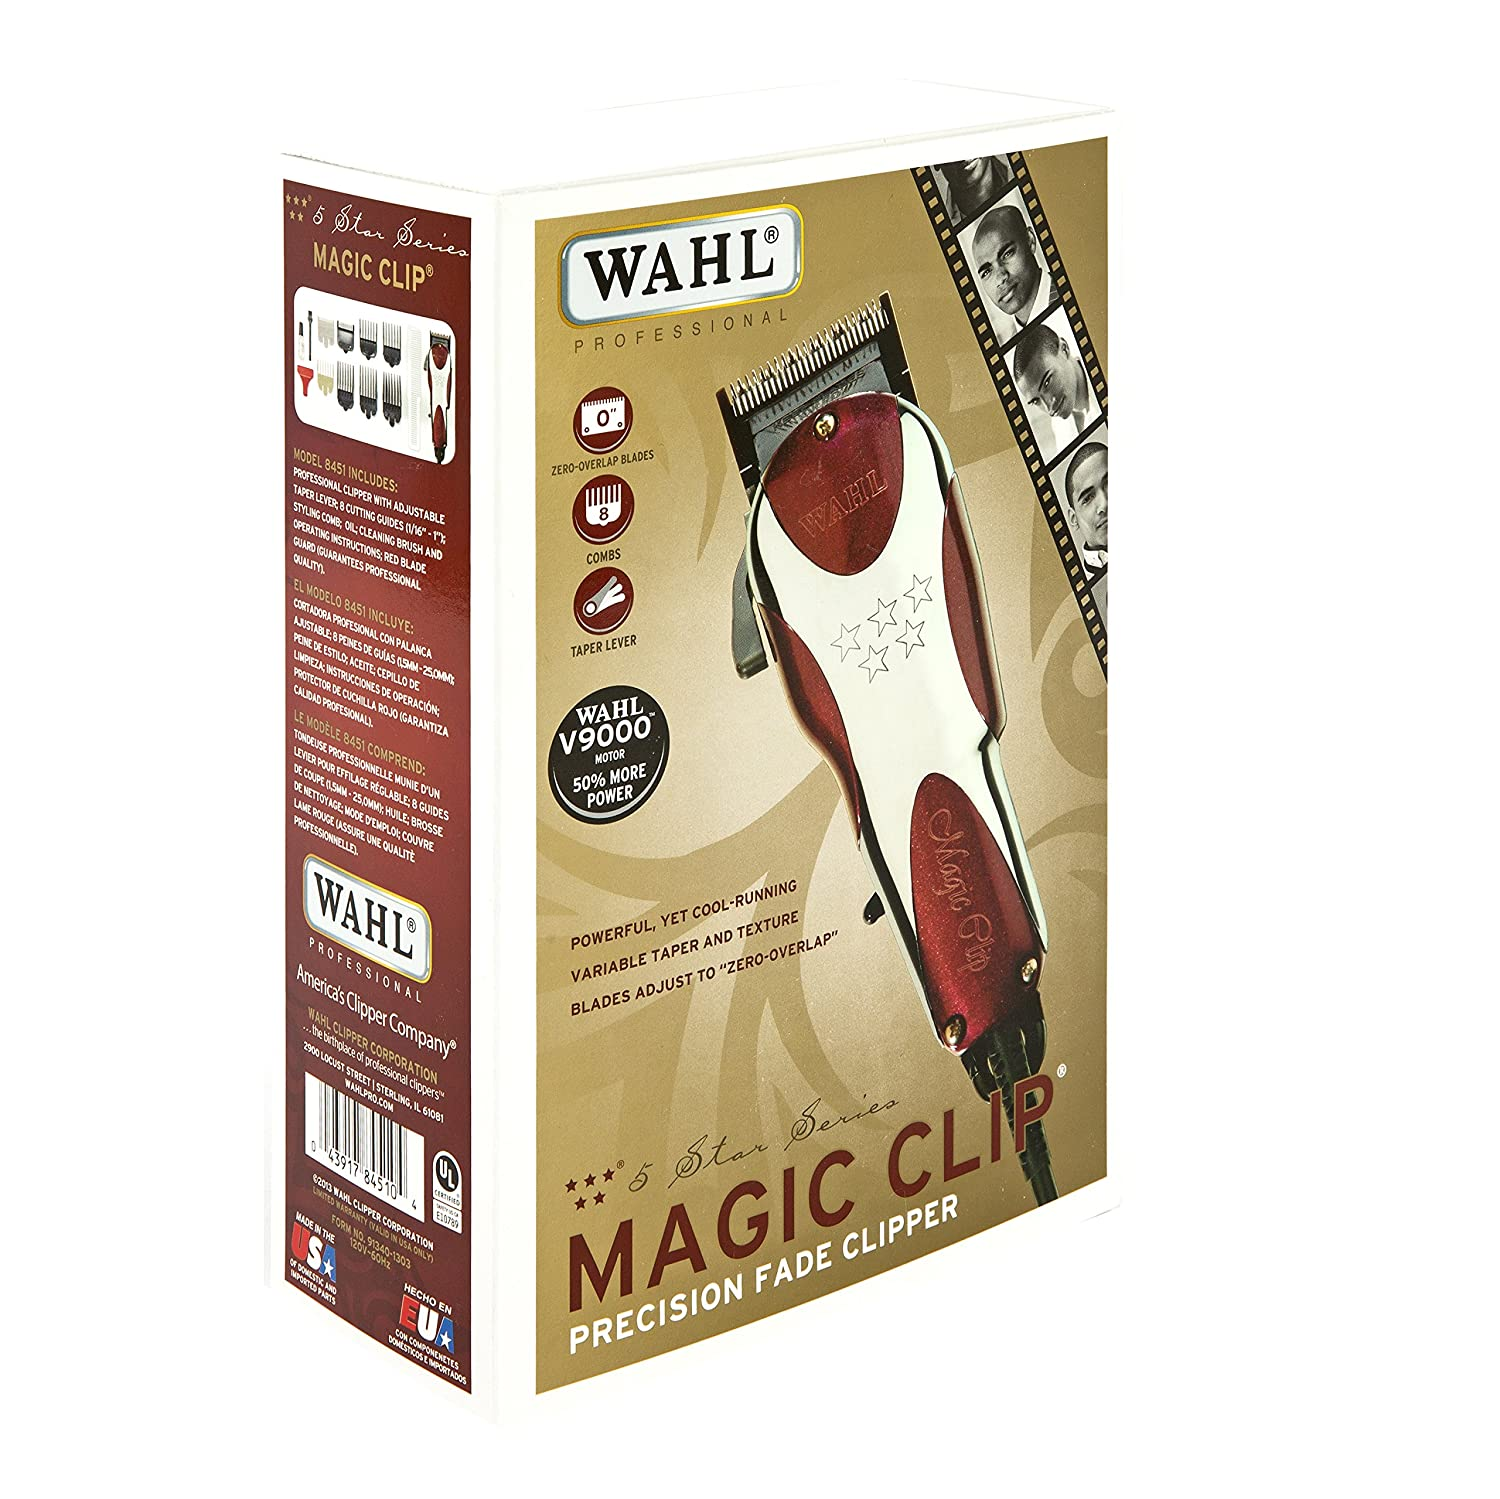 Amazon.com: Wahl Professional 5-Star Magic Clip #8451 – Great for ...